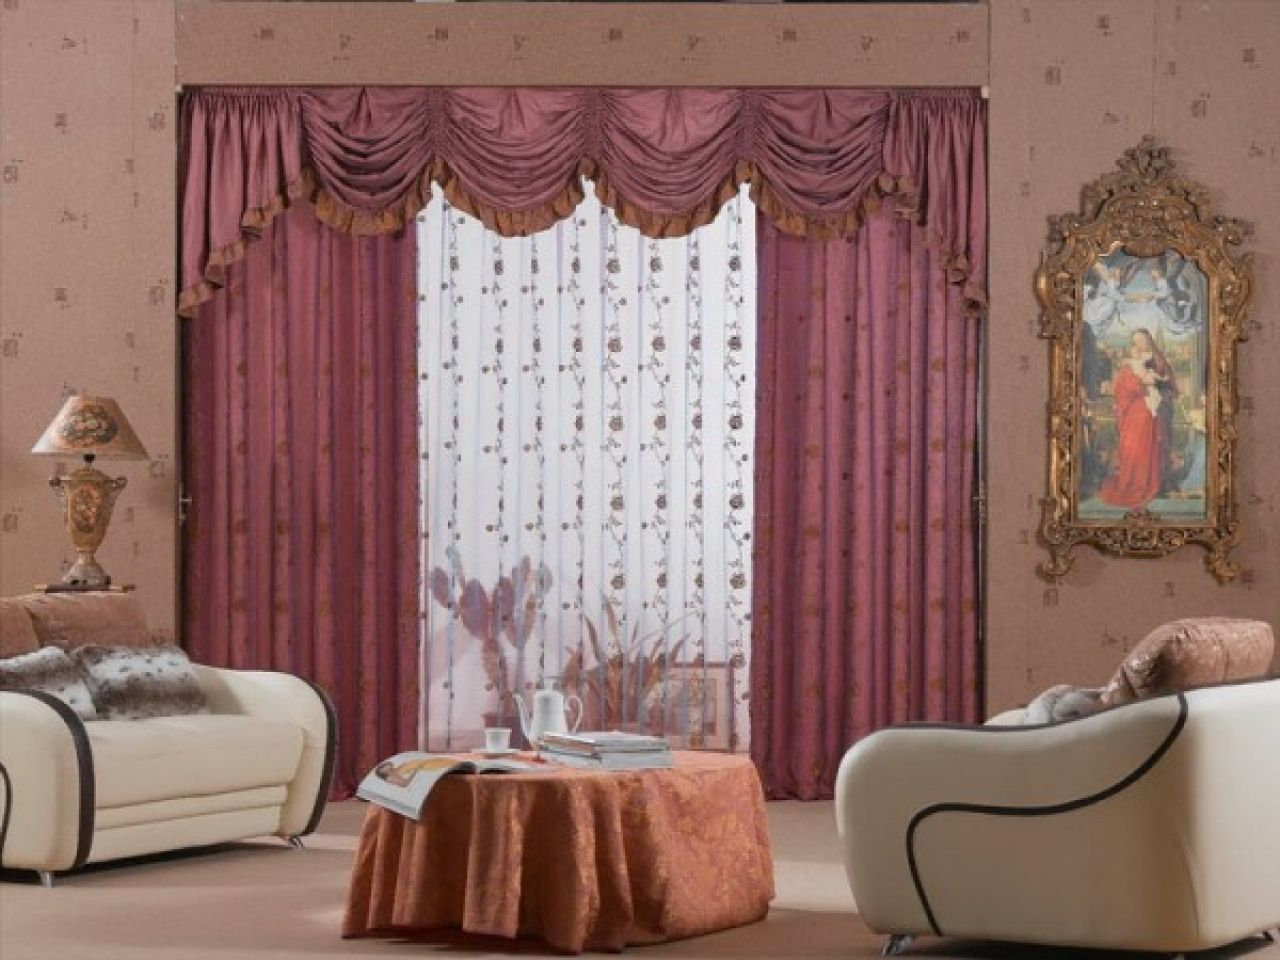 Living Room Curtain Designs Custom Pinpavlina Dimitrova On Пердета И Щори  Pinterest Inspiration